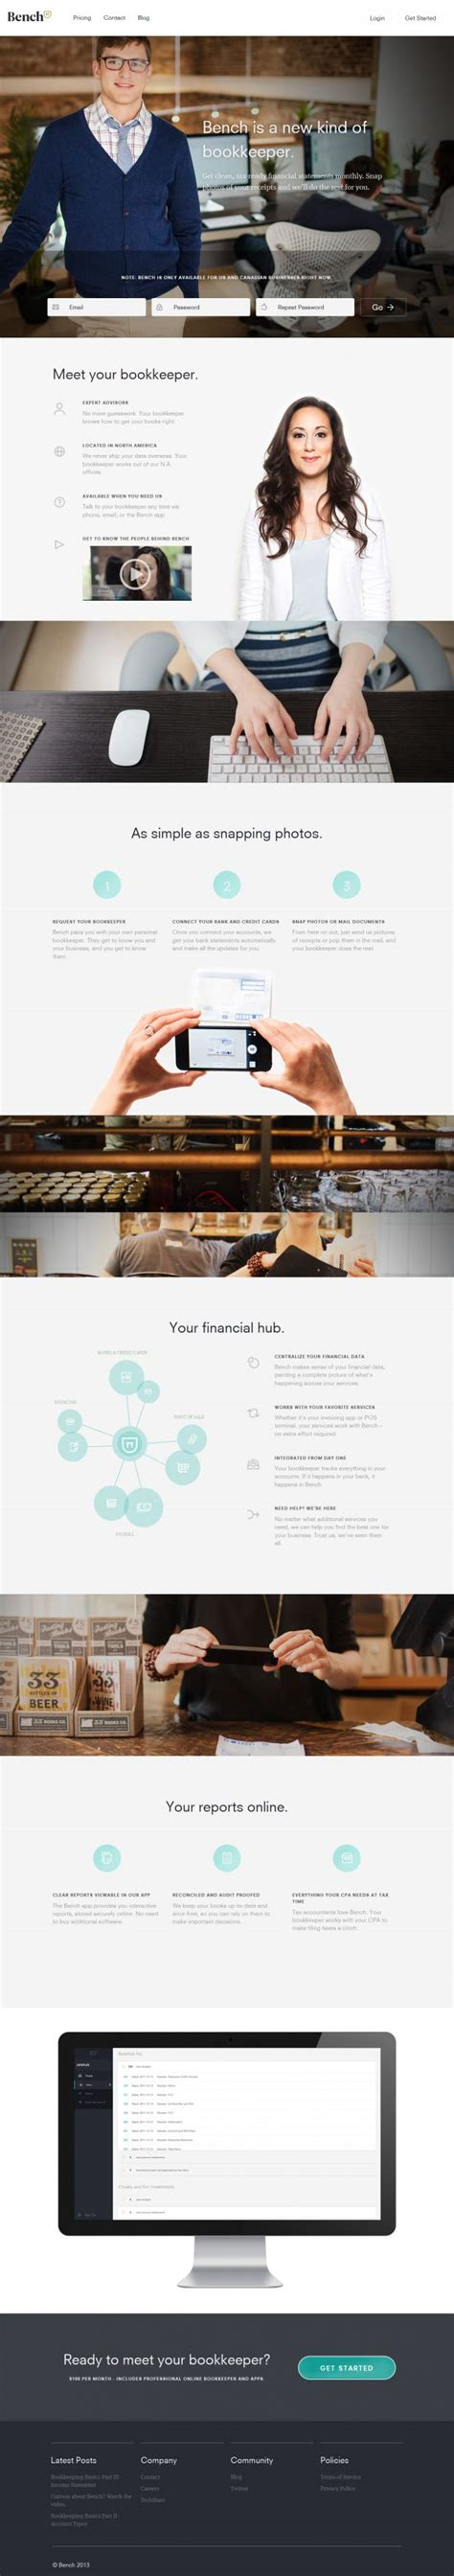 bench site design bench and the online bookkeepers webdesign inspiration